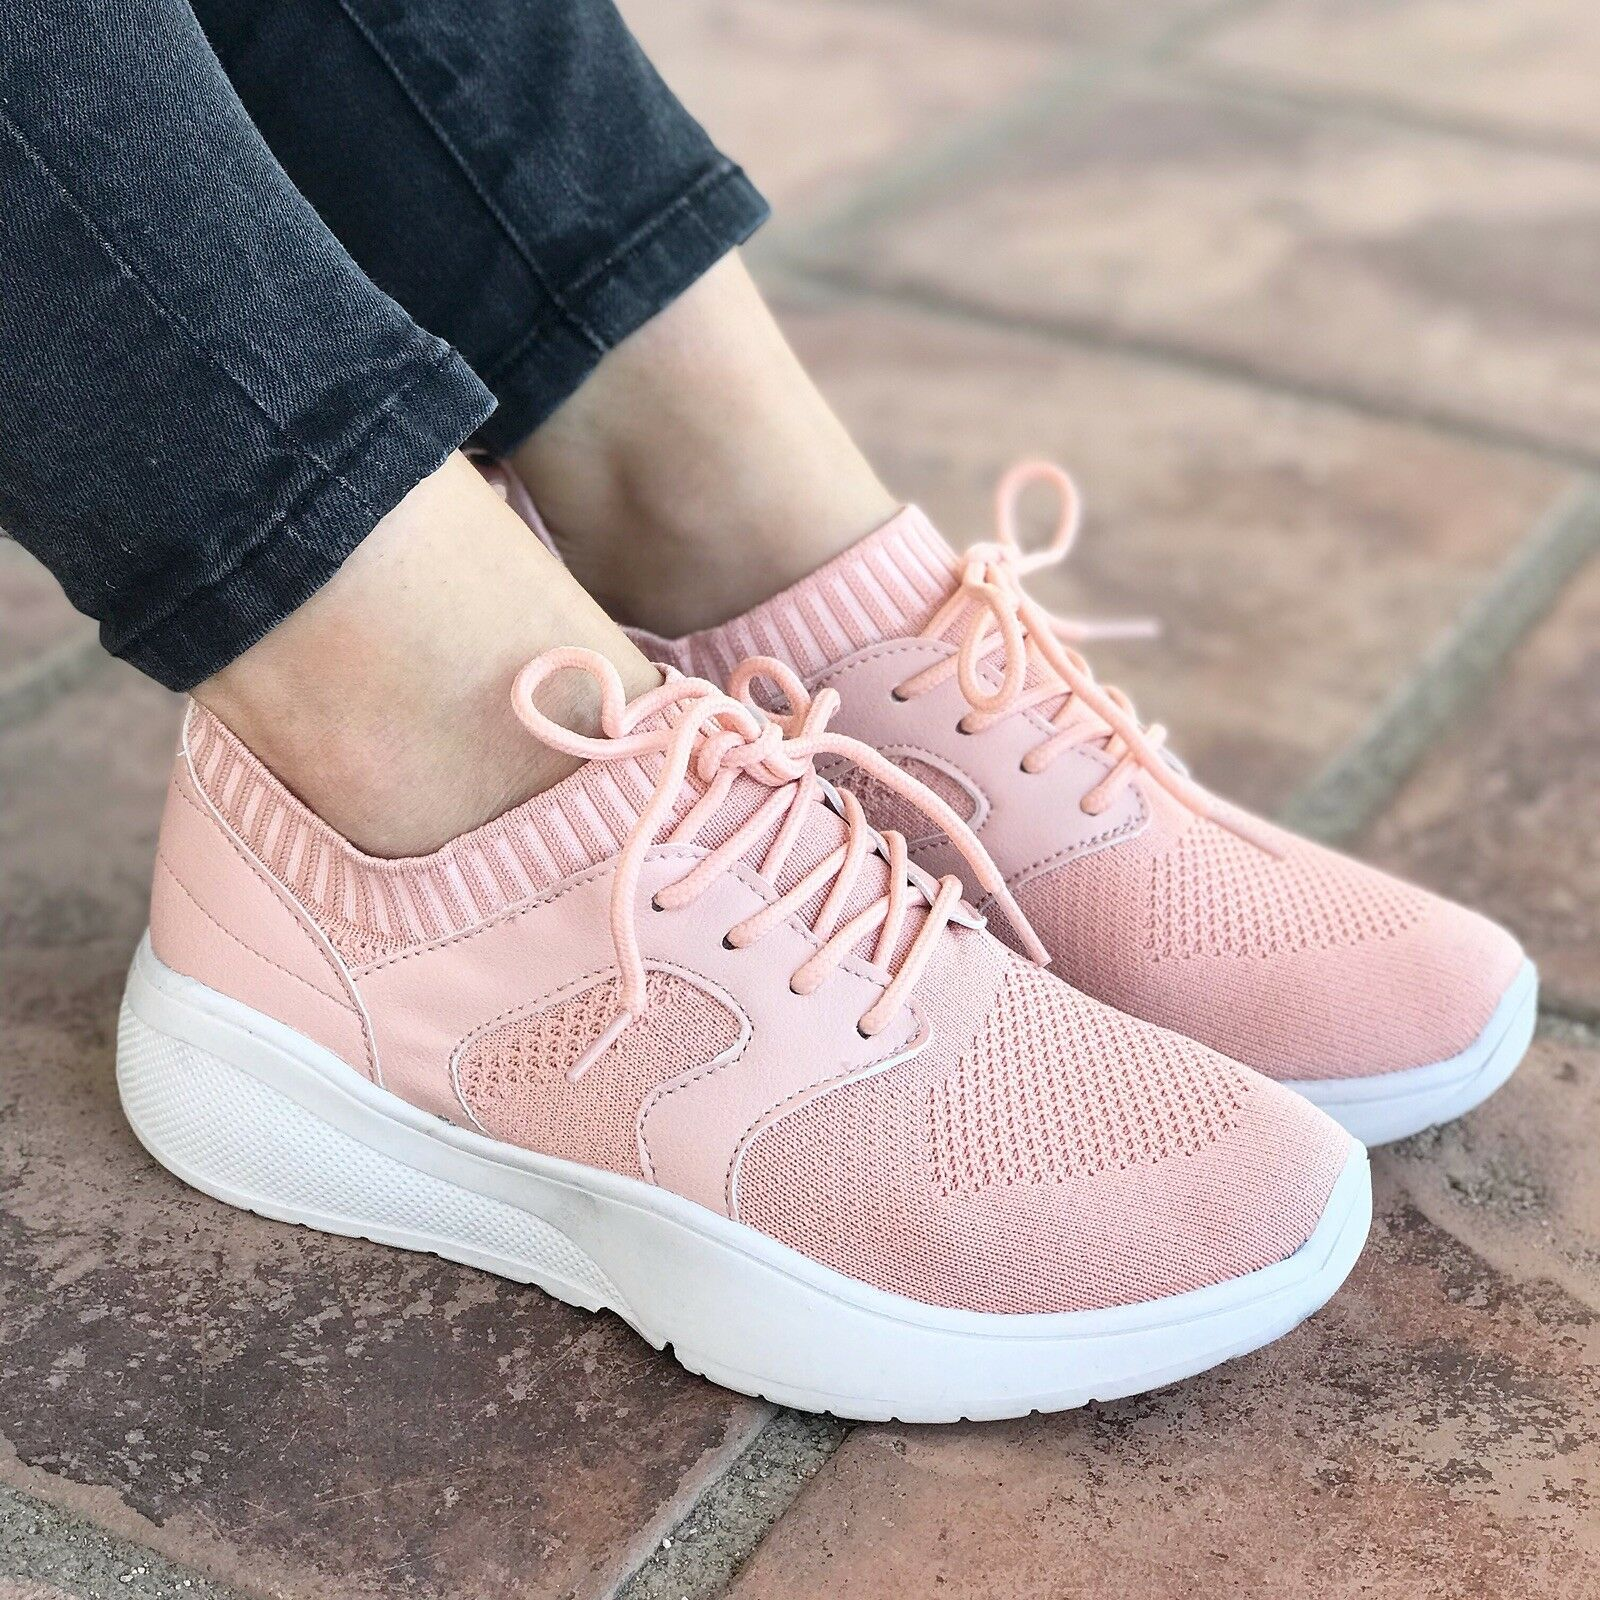 New  Qupid shoes SPORT-01 PINK Flyknit Casual Sneaker - SIZE 9